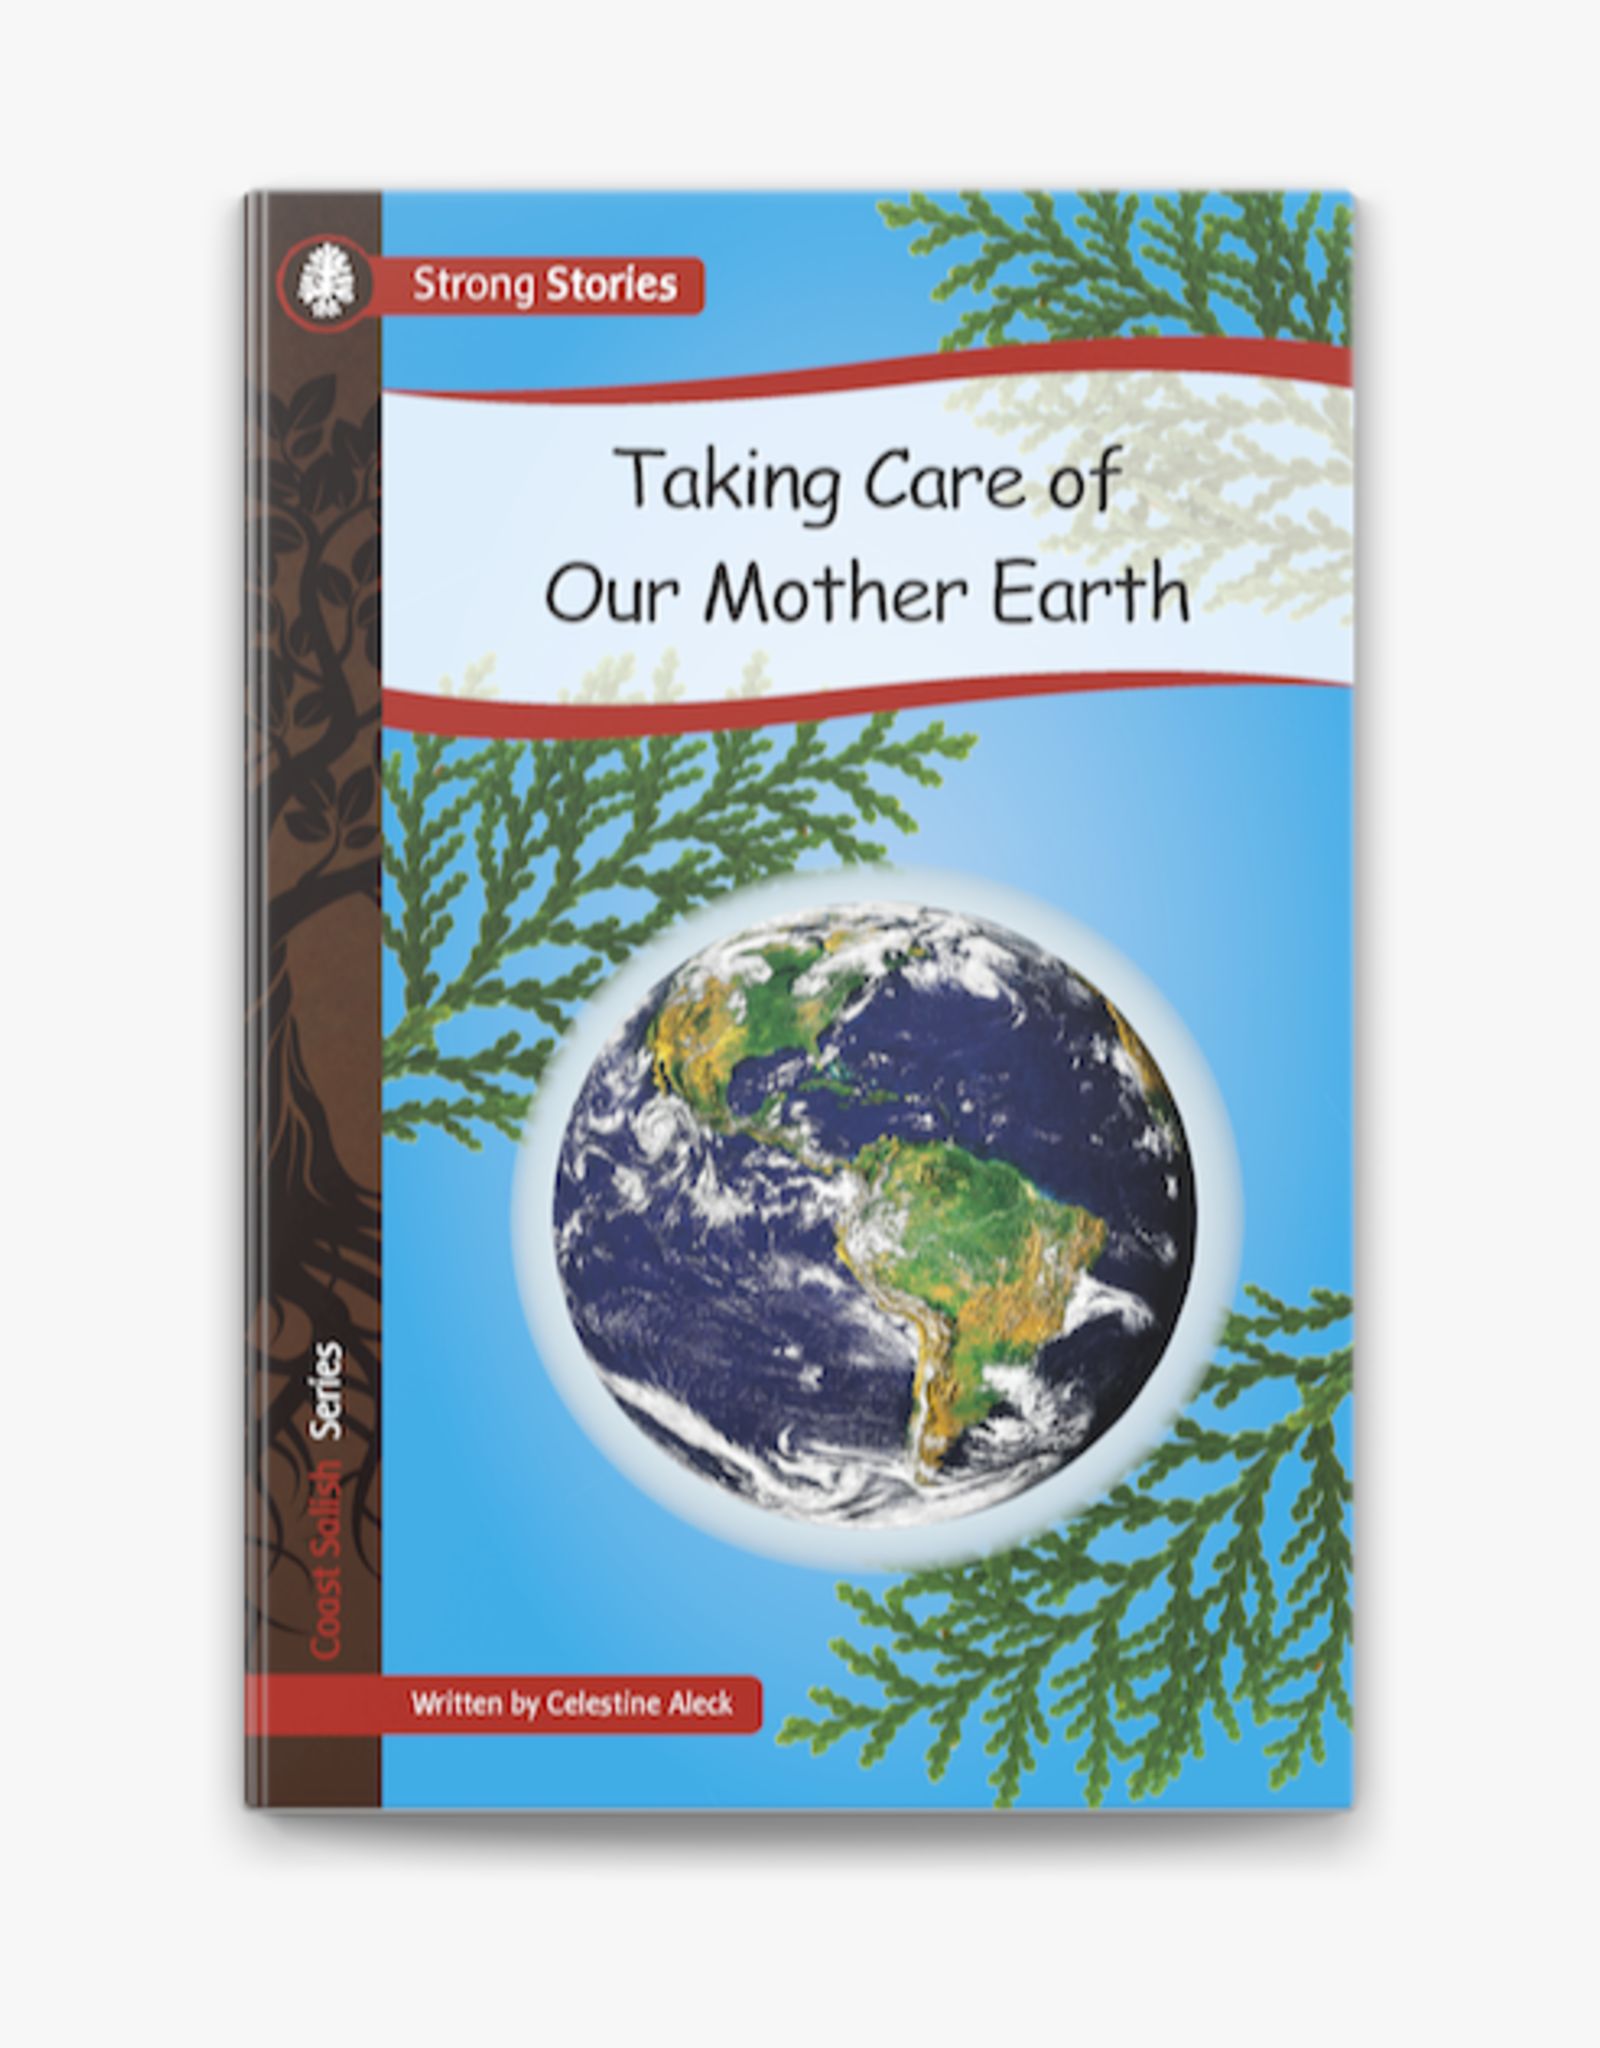 Strong Stories-Taking care of our mother earth